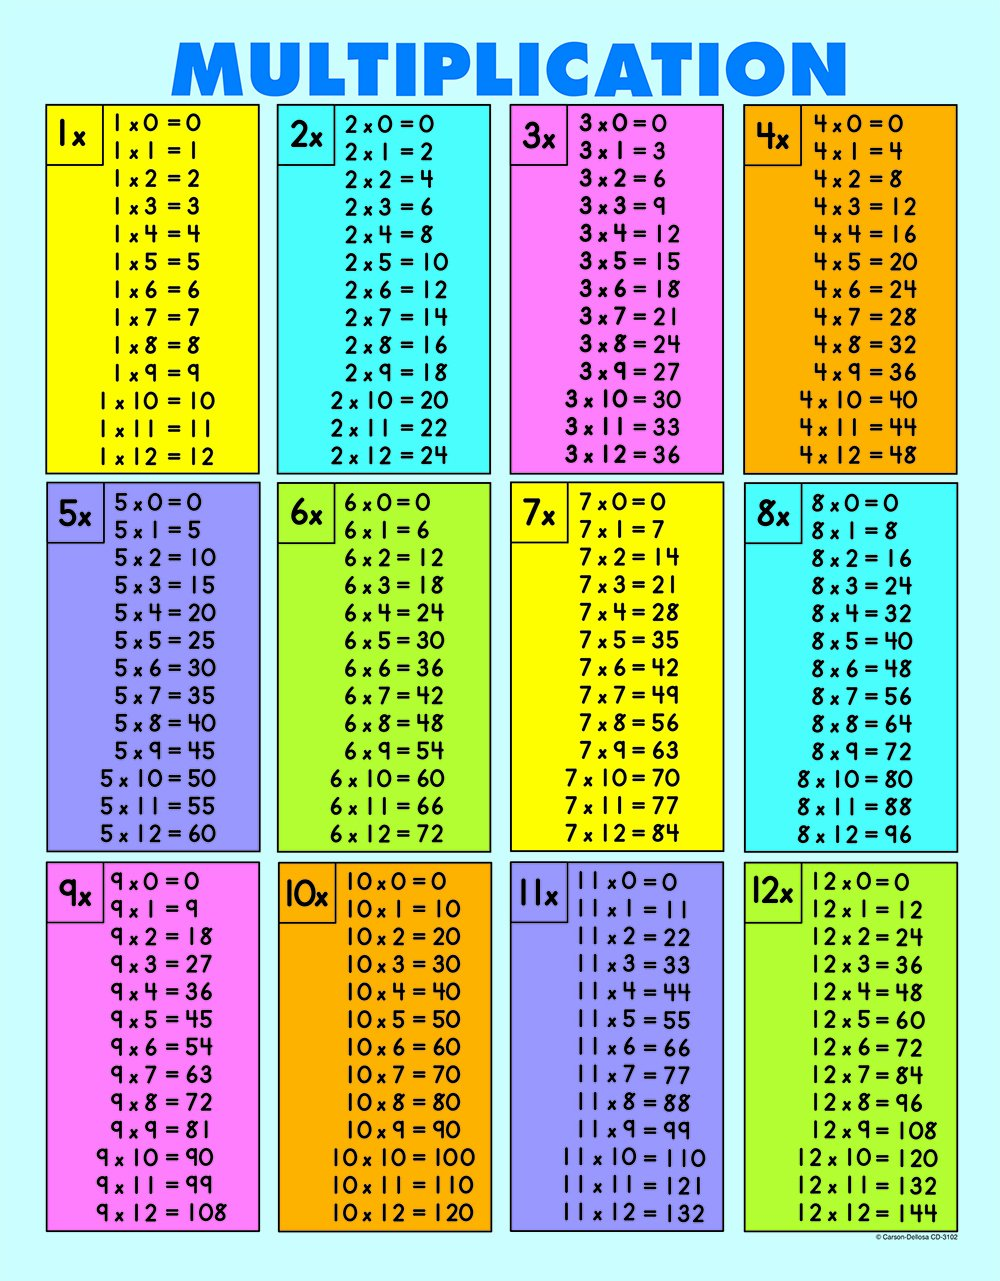 Multiplication facts through 12 popflyboys for Table multiplication 8